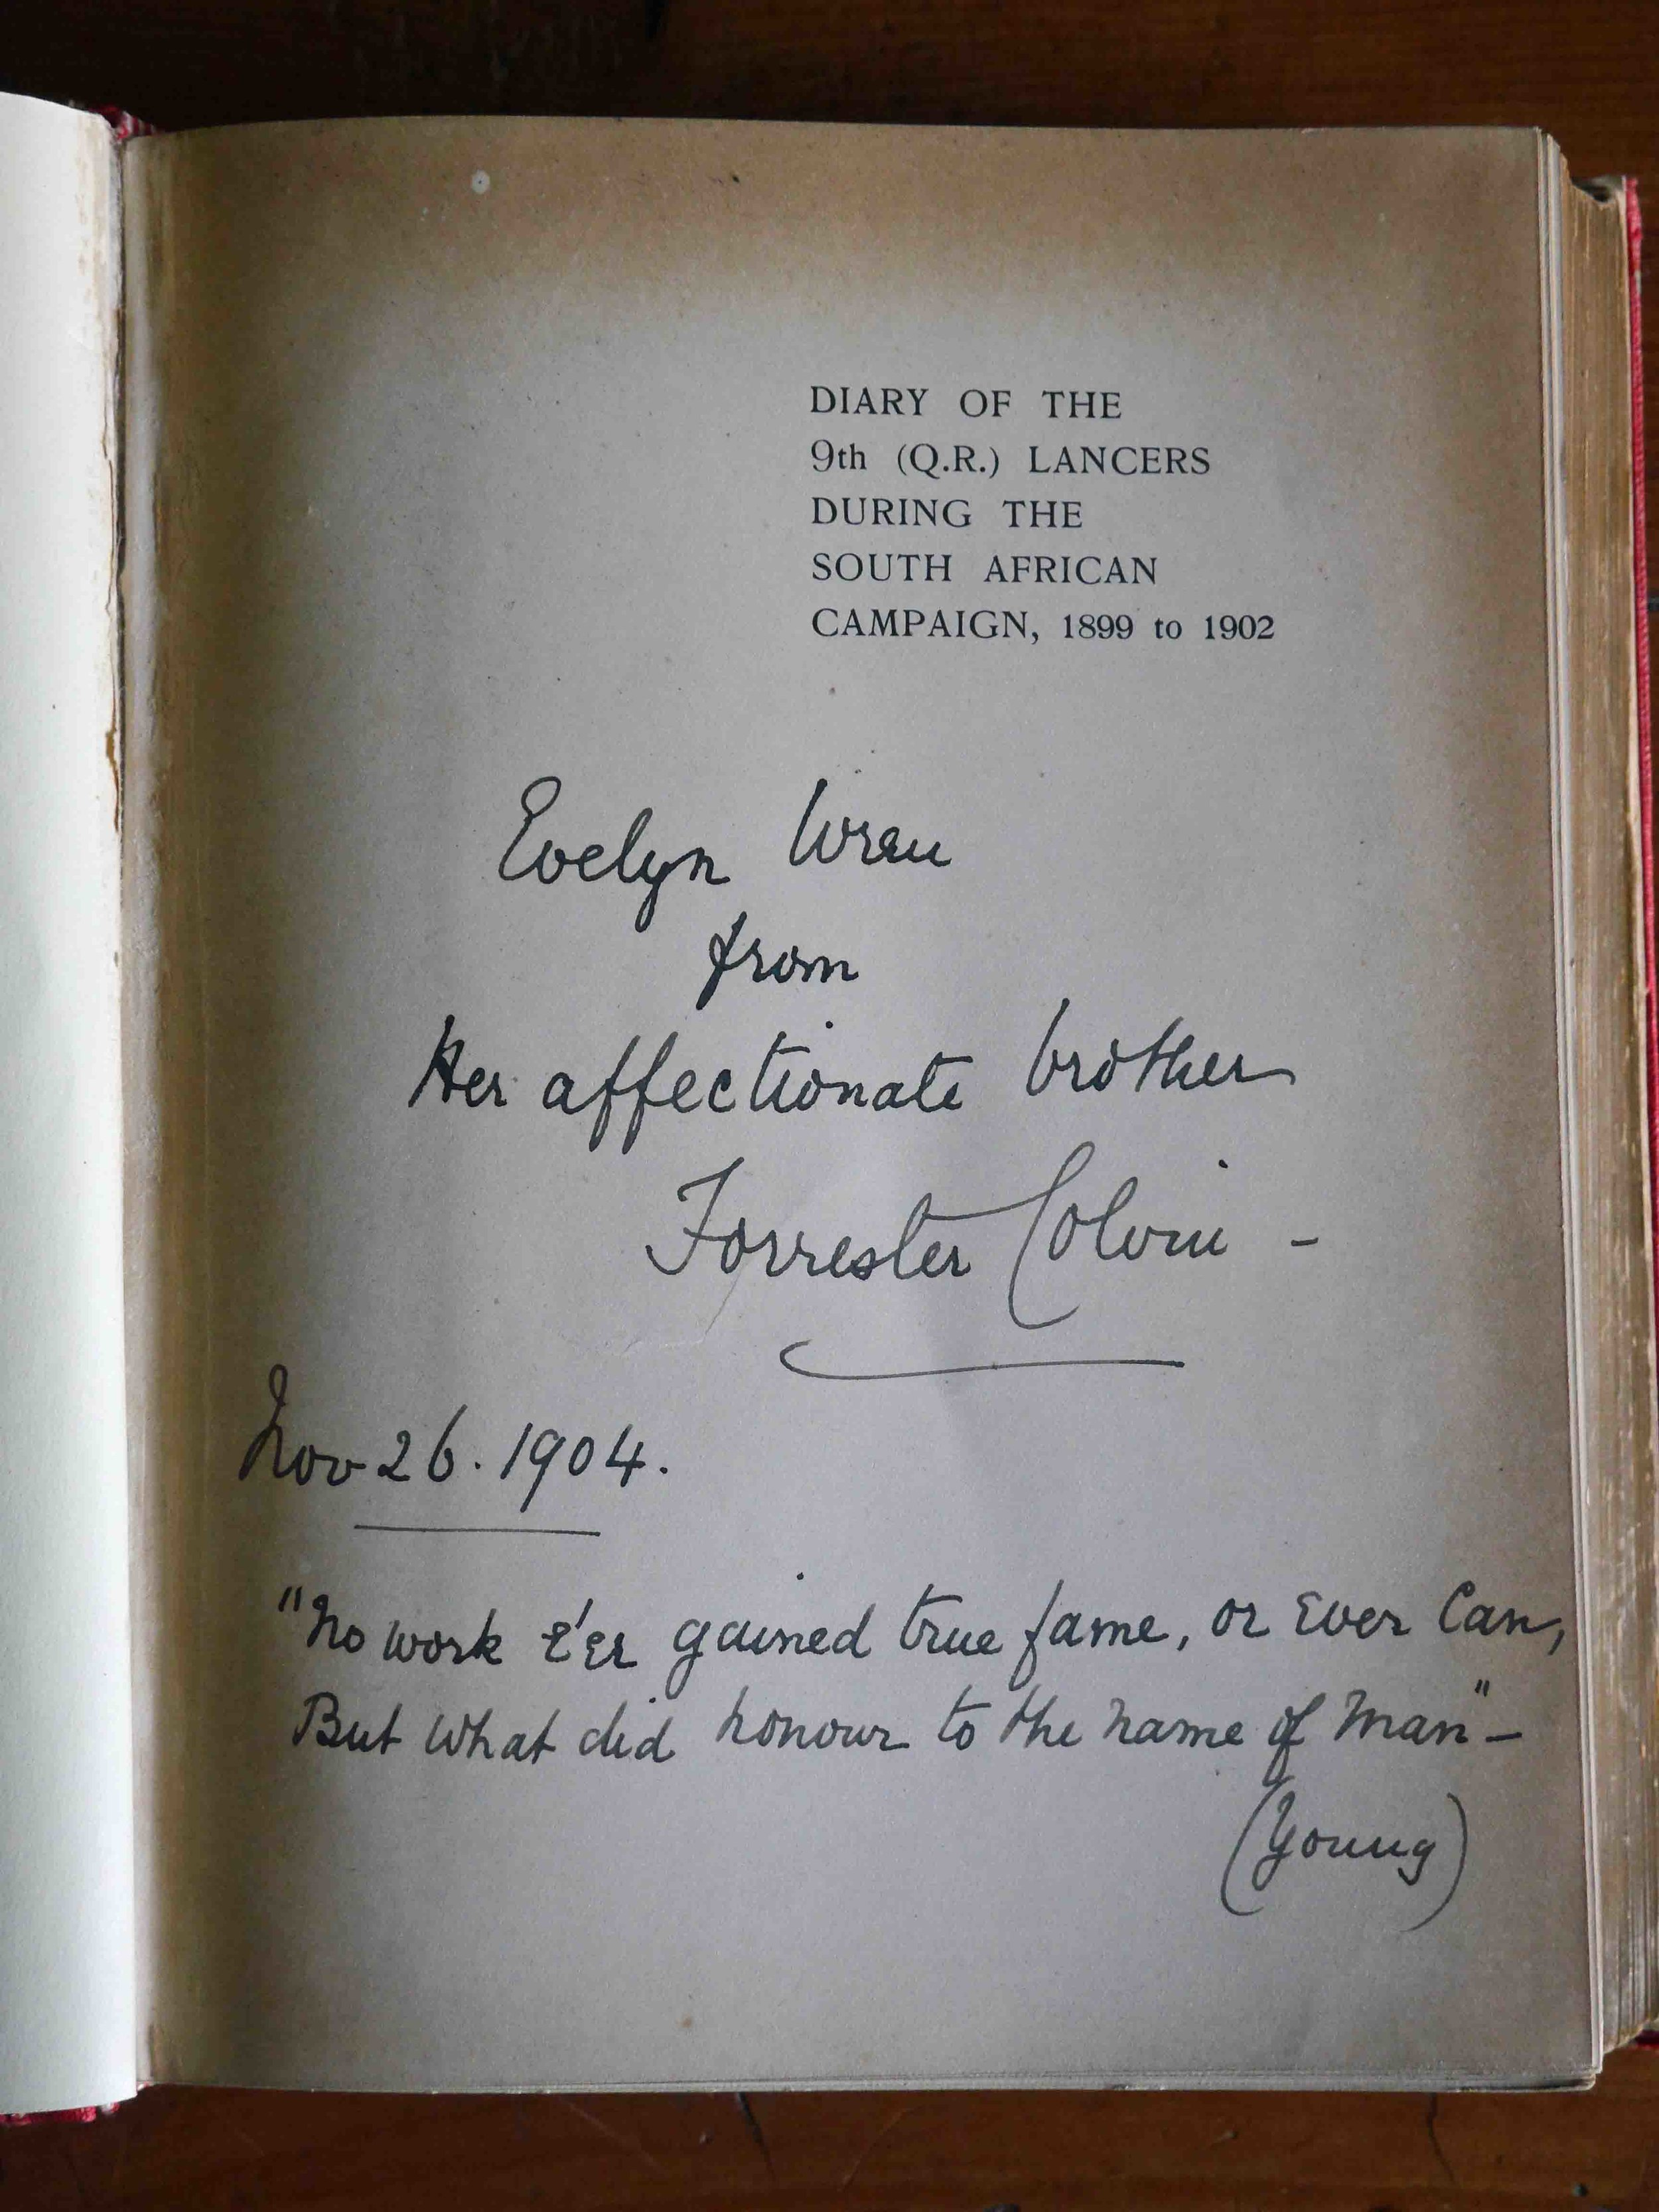 This copy of Colvin and Gordon's Diary is signed by Colvin to his sister. Forrester Farnell Colvin (1860-1936) commanded the 9th Lancers in South Africa from July 1900 to February 1901. He retired as a Lieutenant Colonel and was awarded a C.B.E. following re-employment as a staff officer during the First World War, when one of his jobs was to decide the fate of British cavalry horses in Germany in 1919 (family collection).